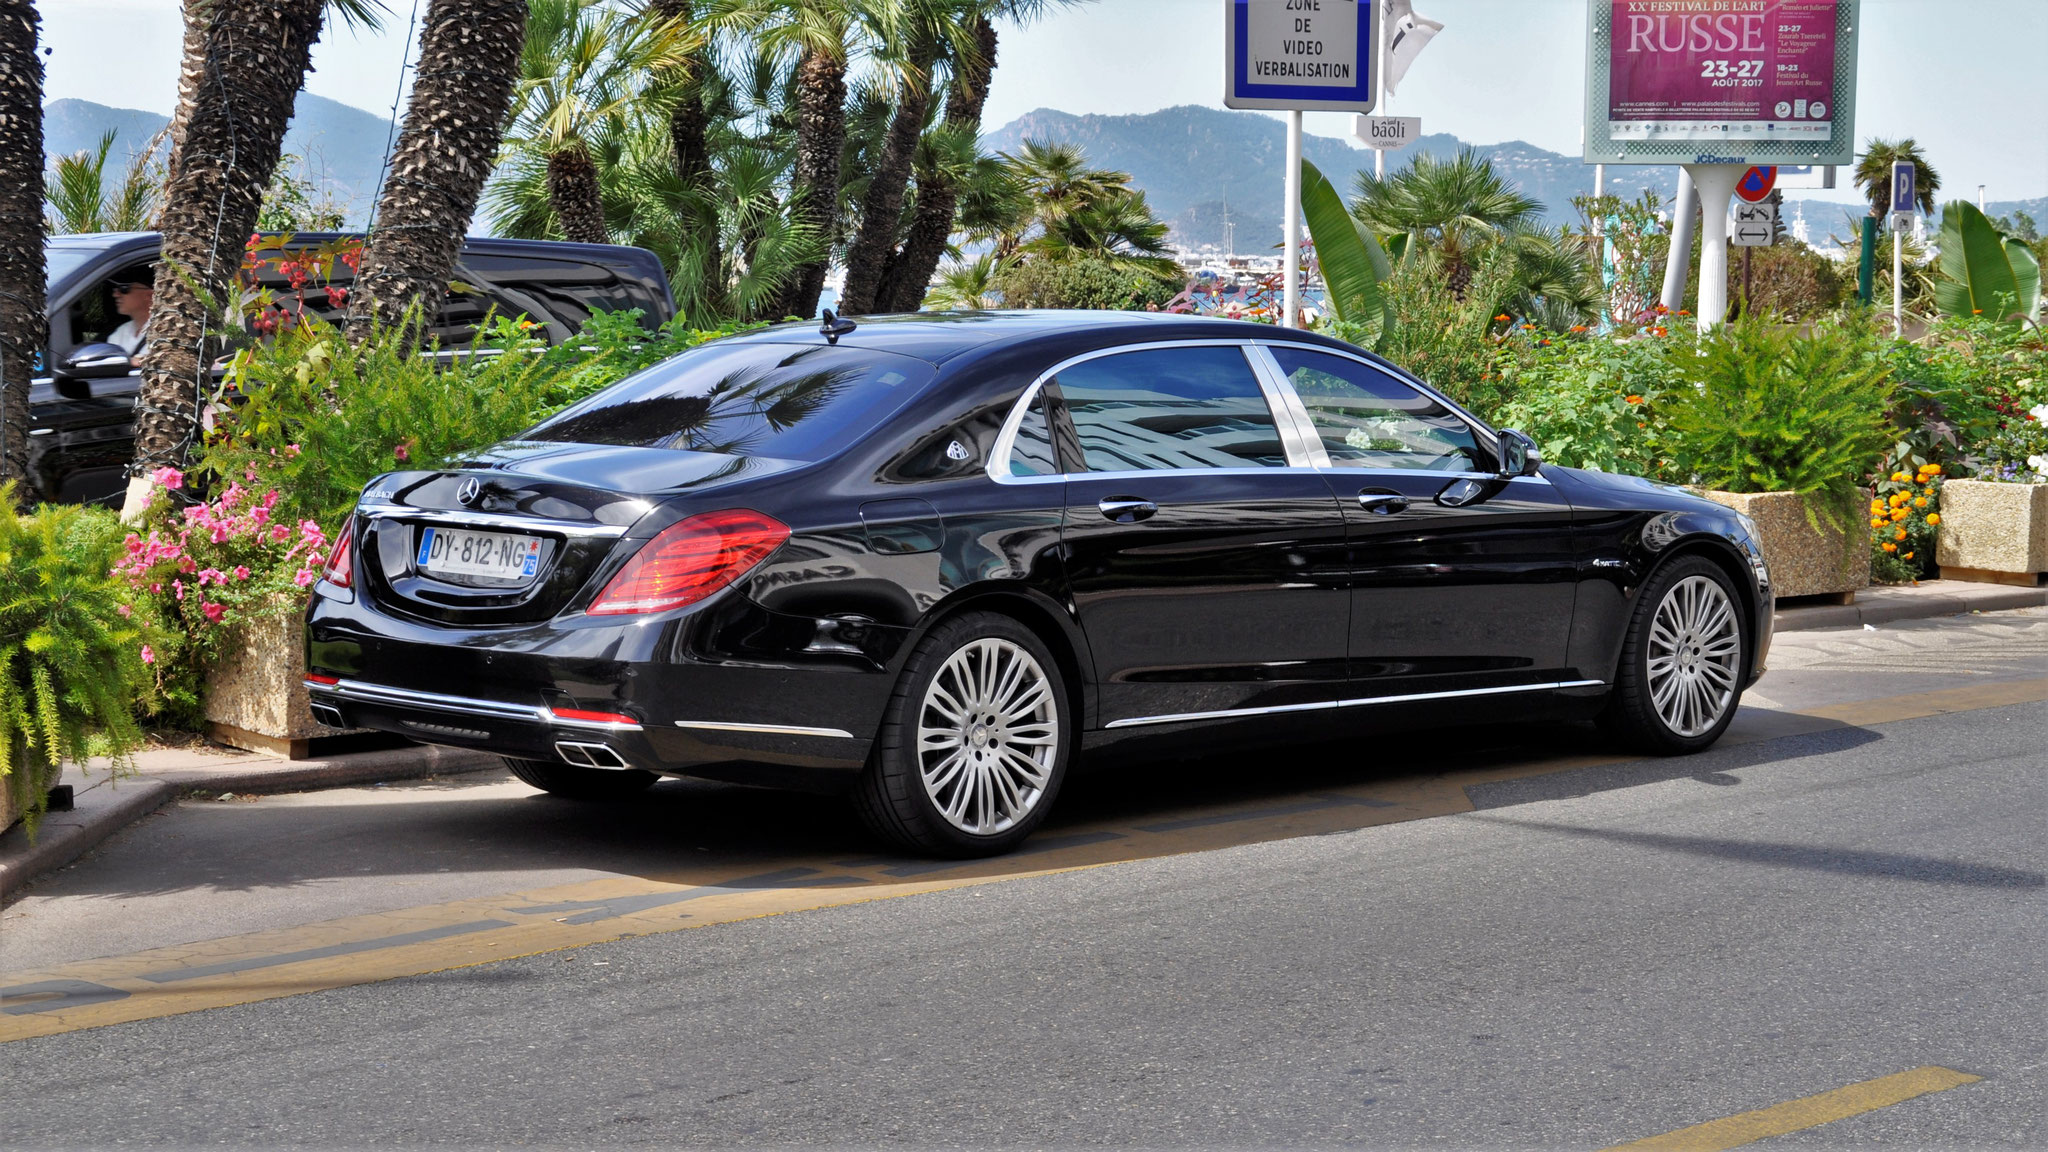 Mercedes Maybach S500 - DY-812-NG-75 (FRA)